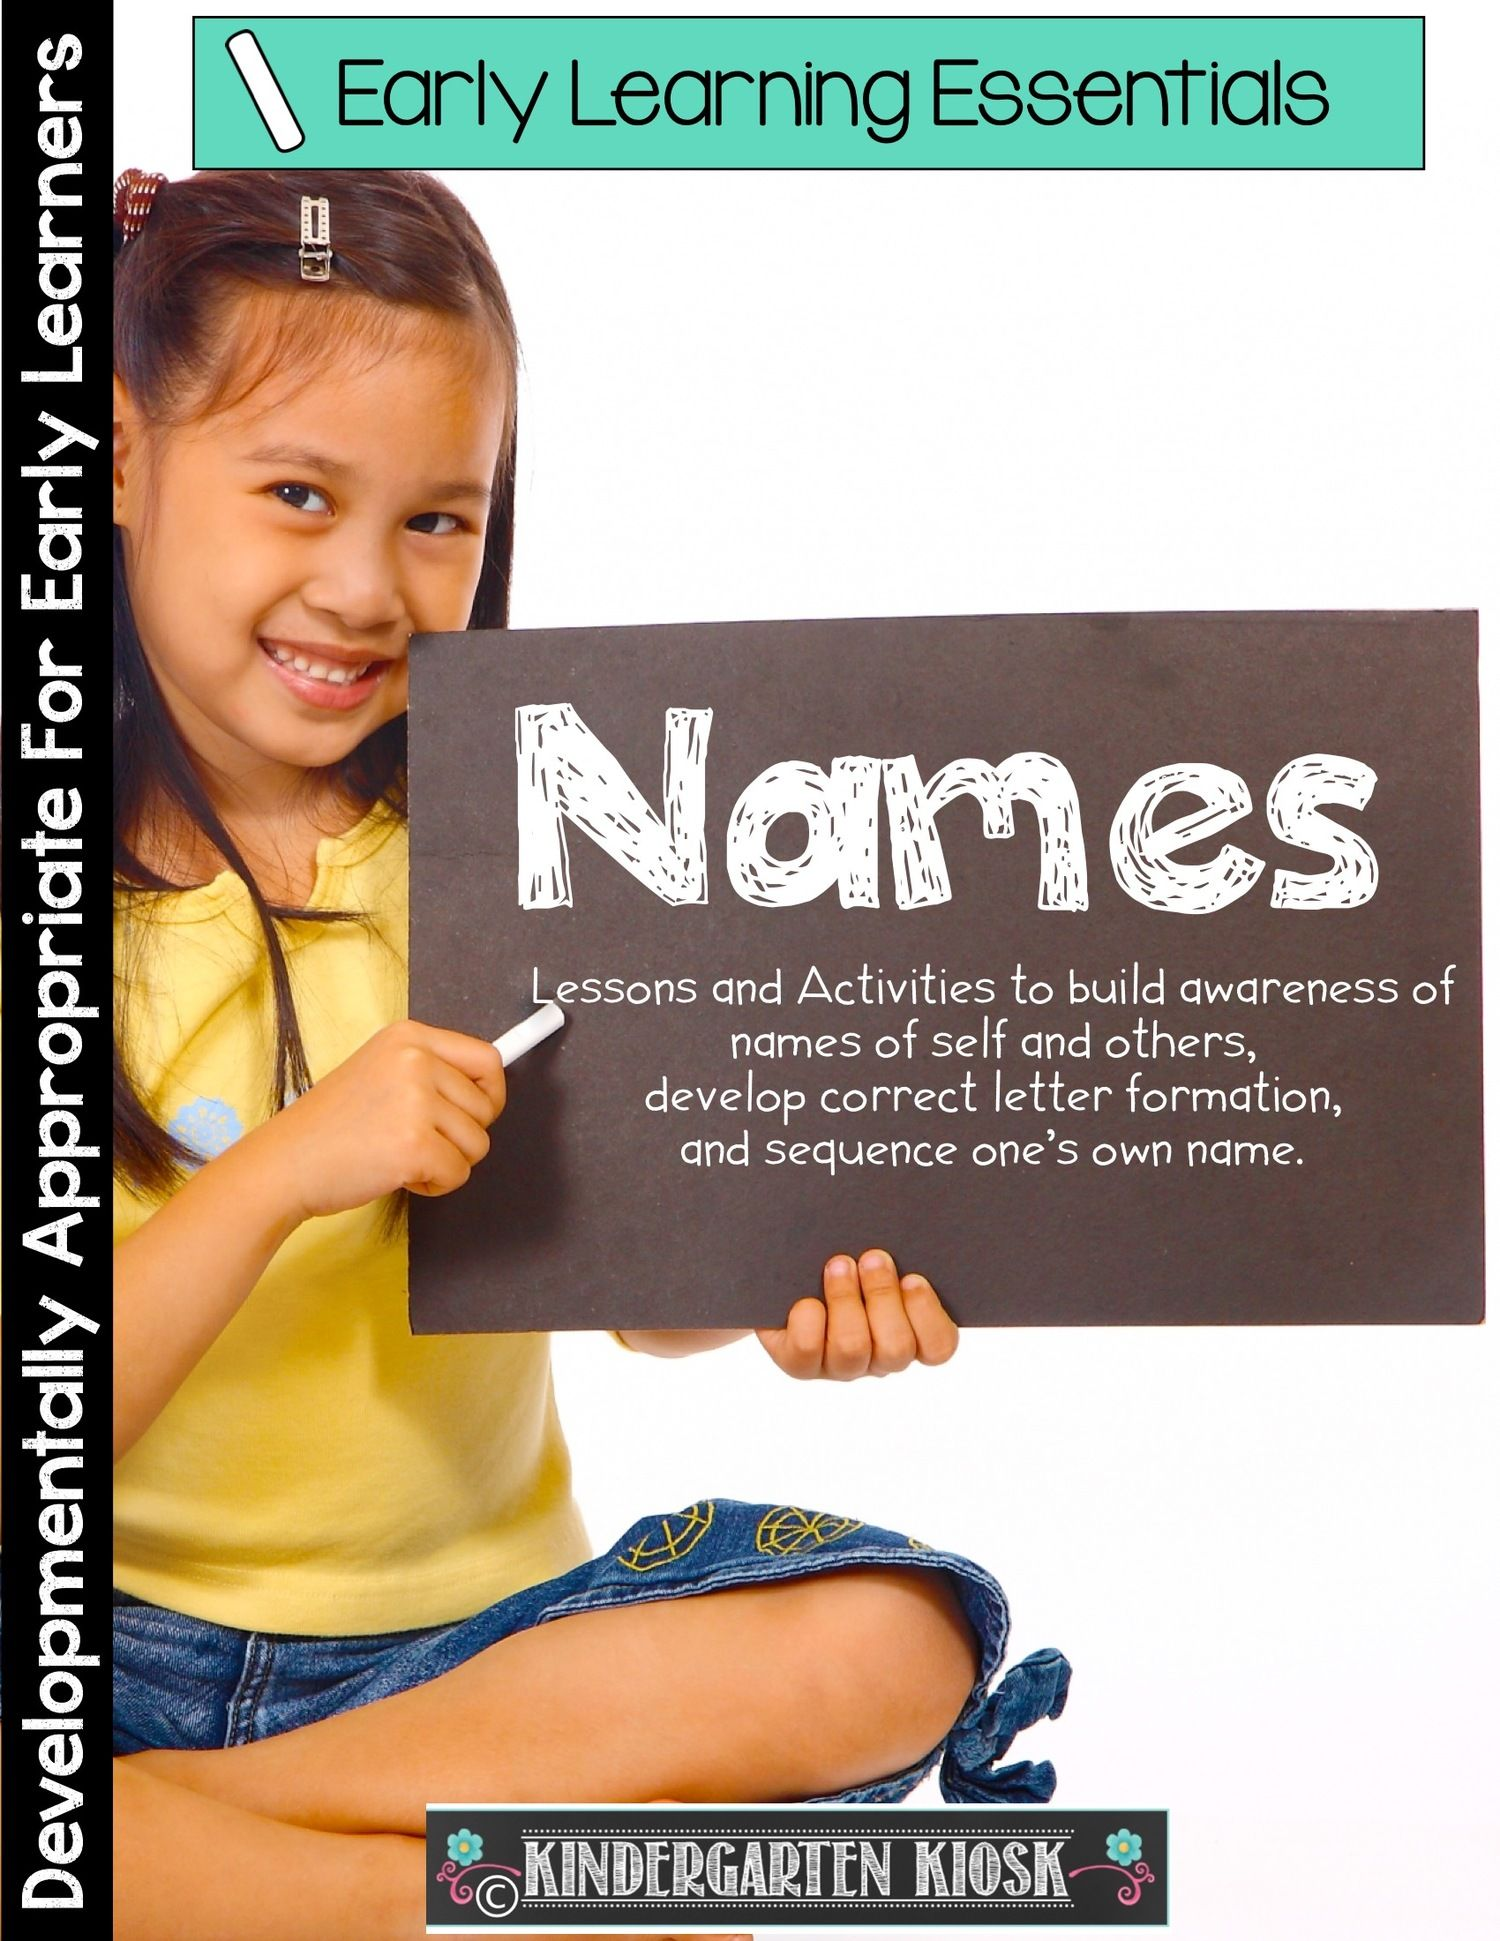 Teaching Young Children To Write And Spell Their Name